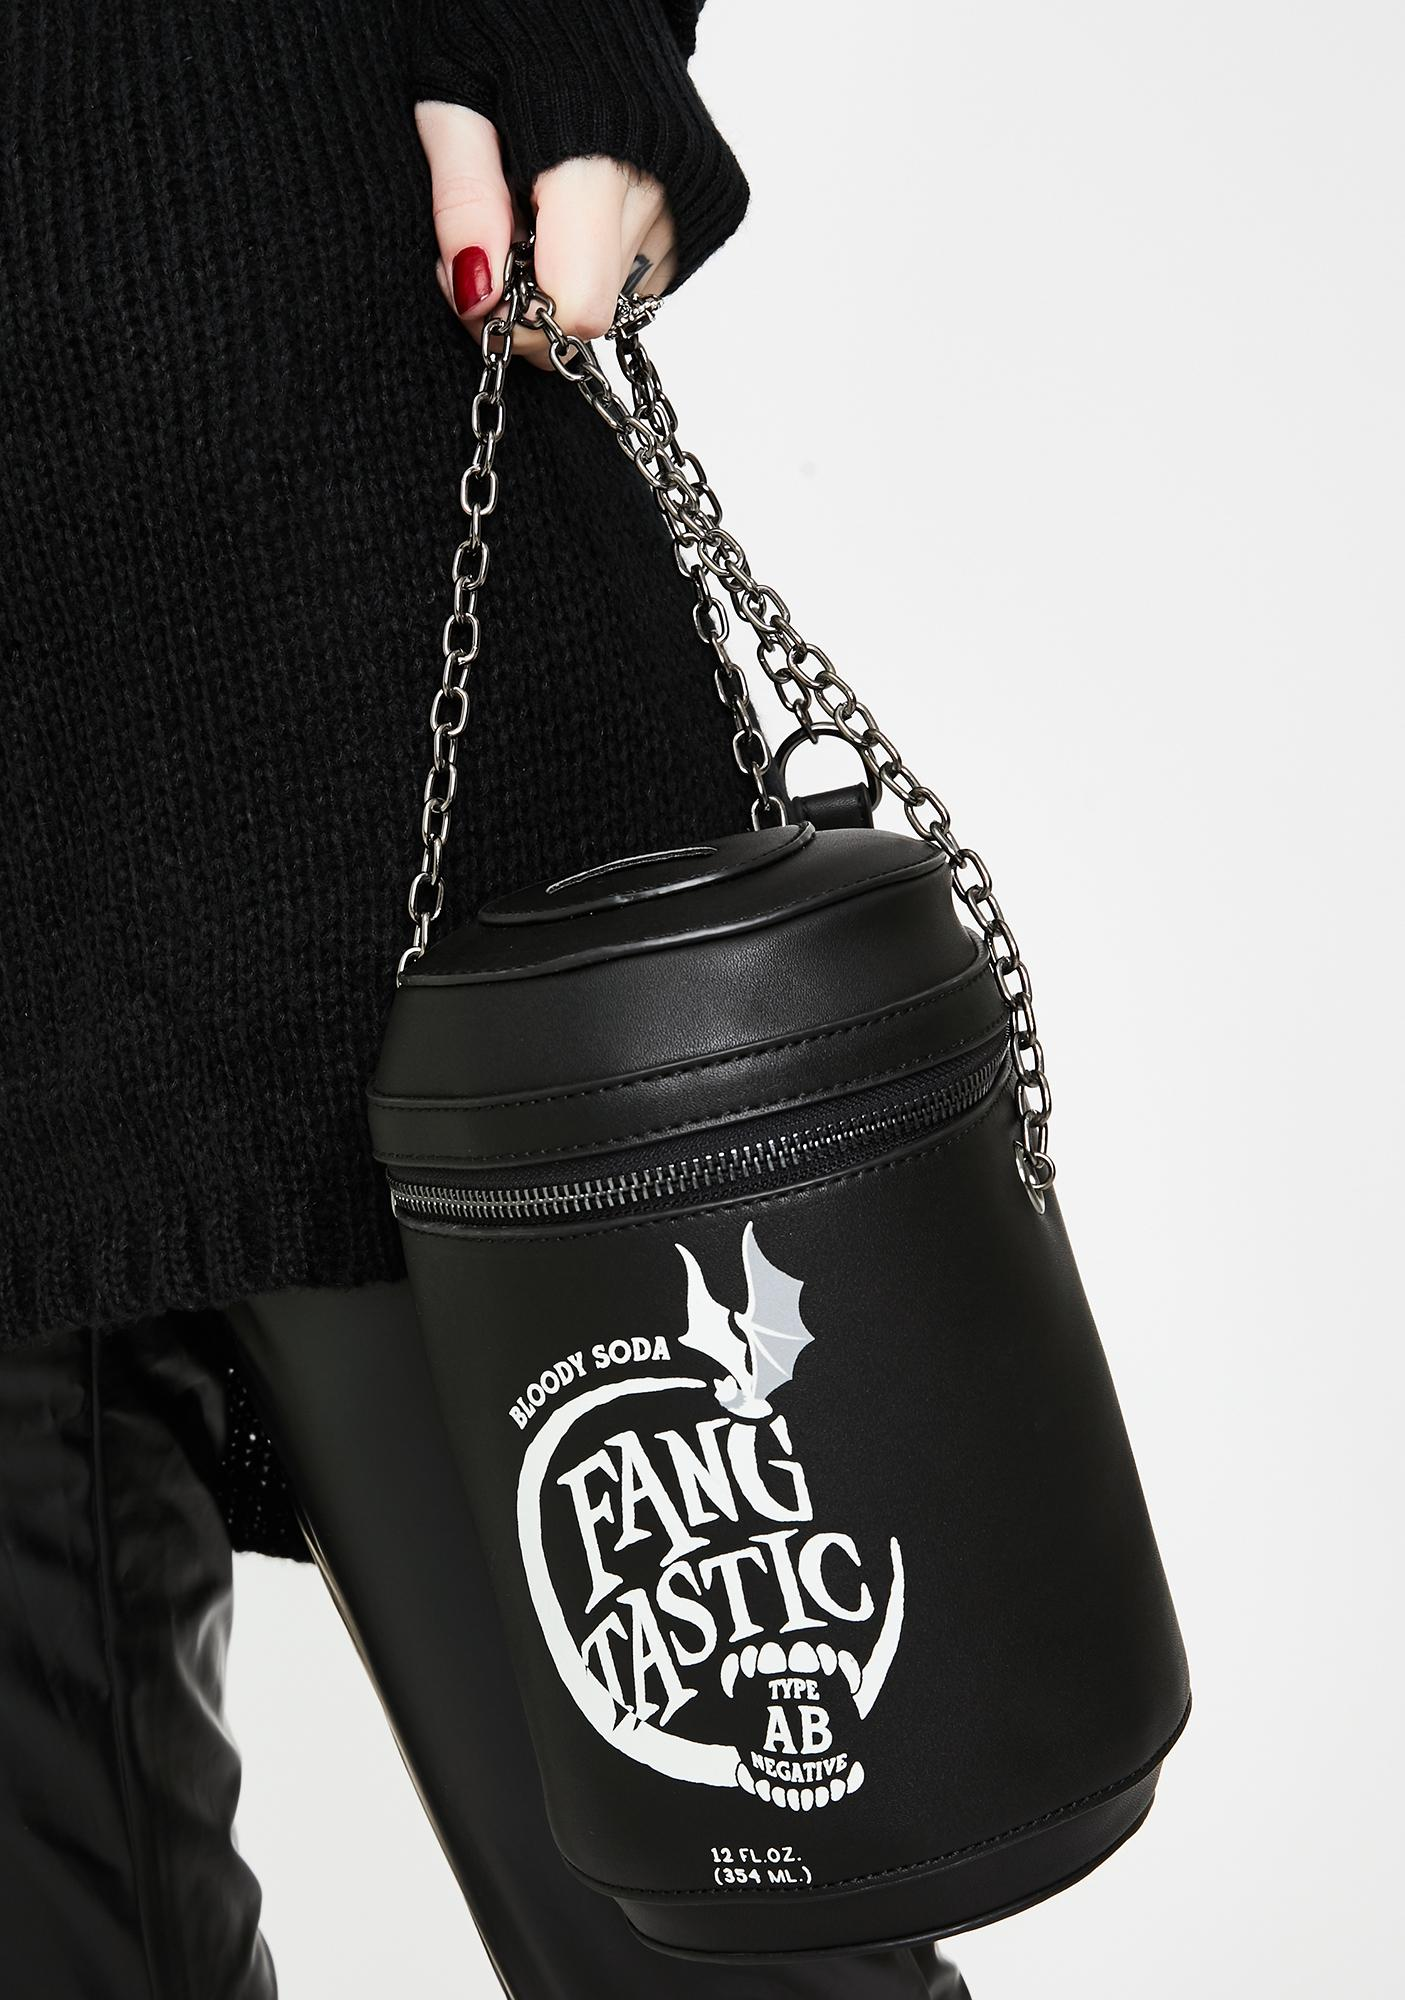 Killstar Fangtastic Soda Handbag